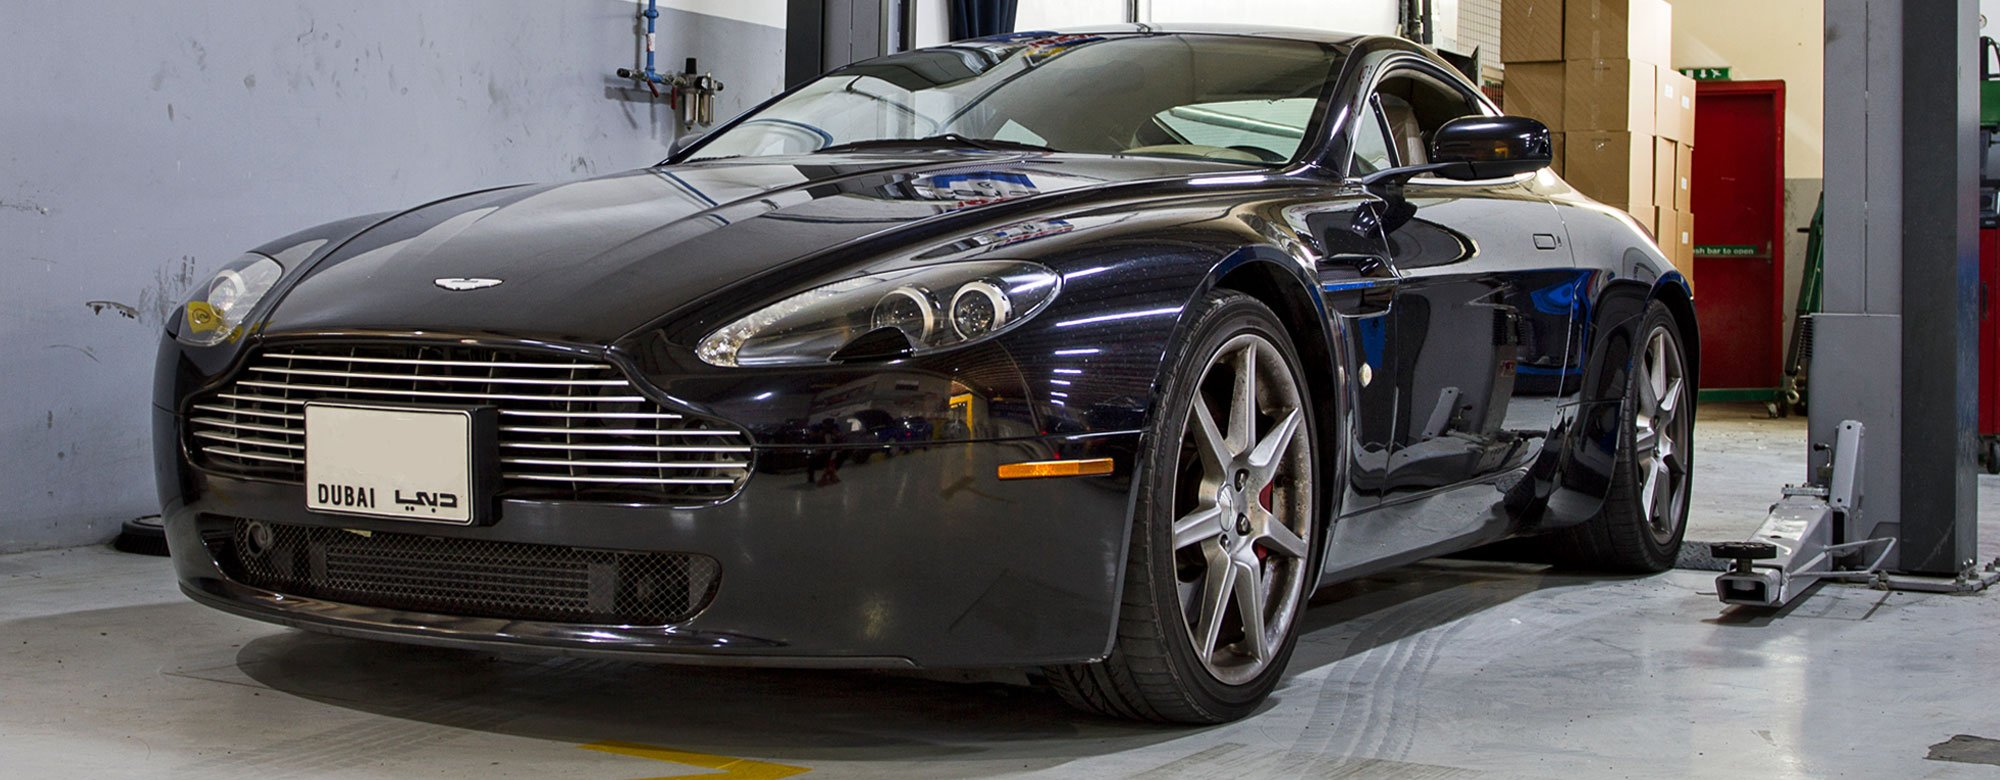 Aston Martin Service Center Dubai, UAE | MYZDEGREE | aston martin parts online